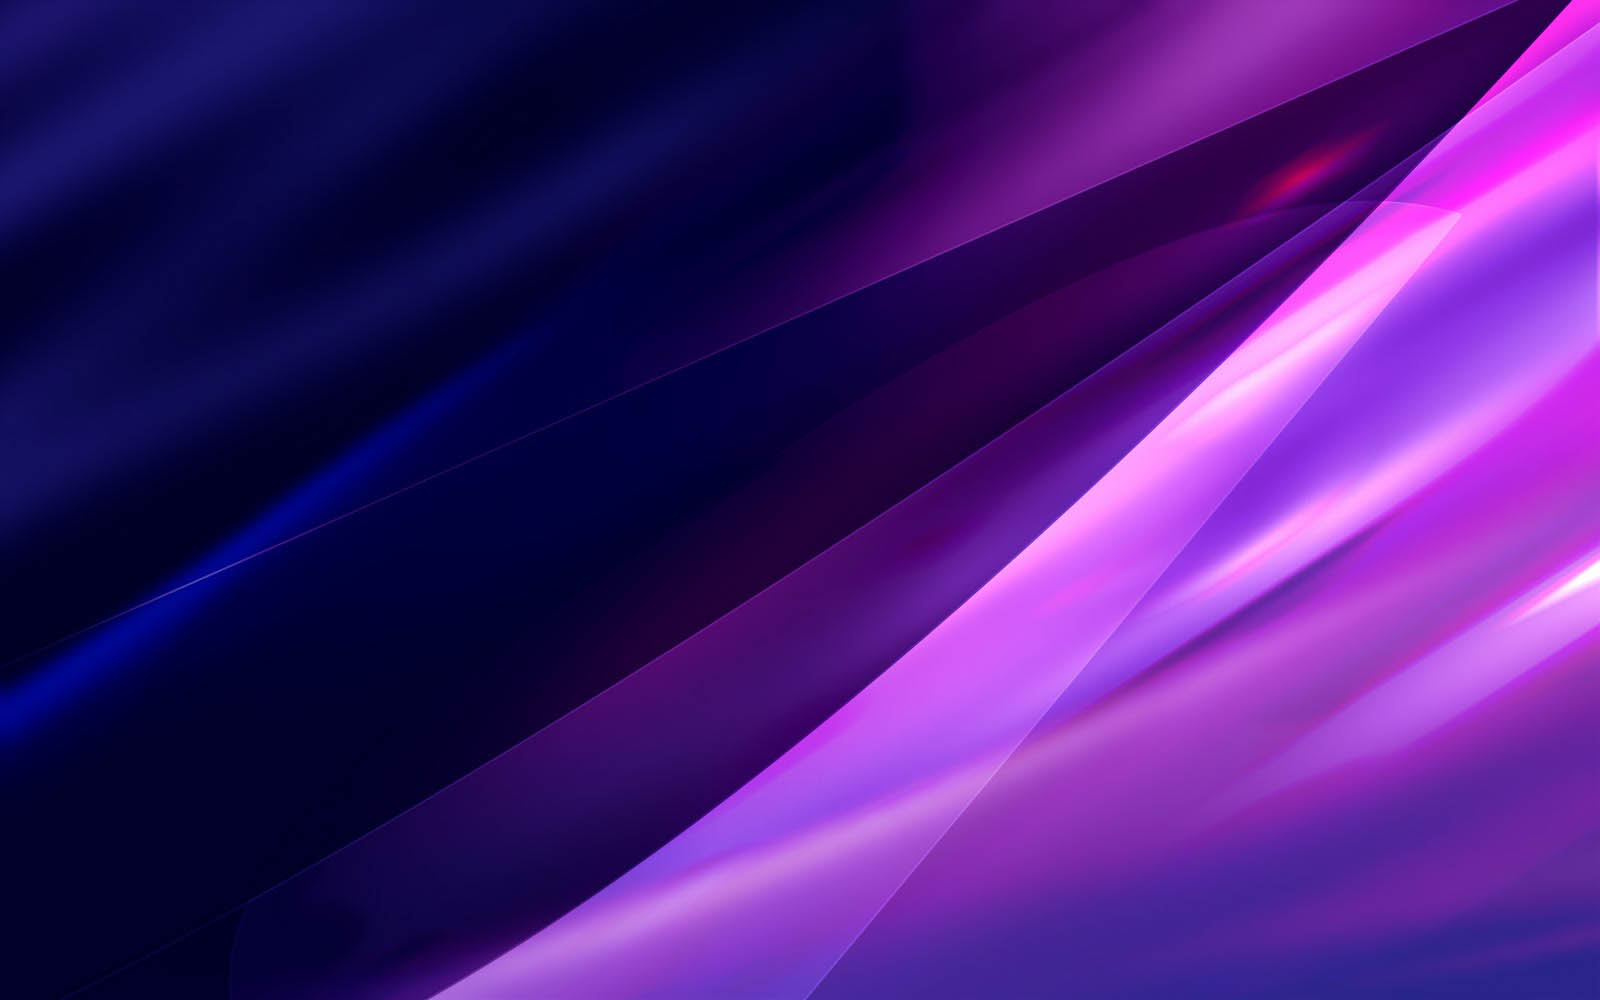 Wallpaper Abstract Purple Wallpapers HD Wallpapers Download Free Images Wallpaper [1000image.com]